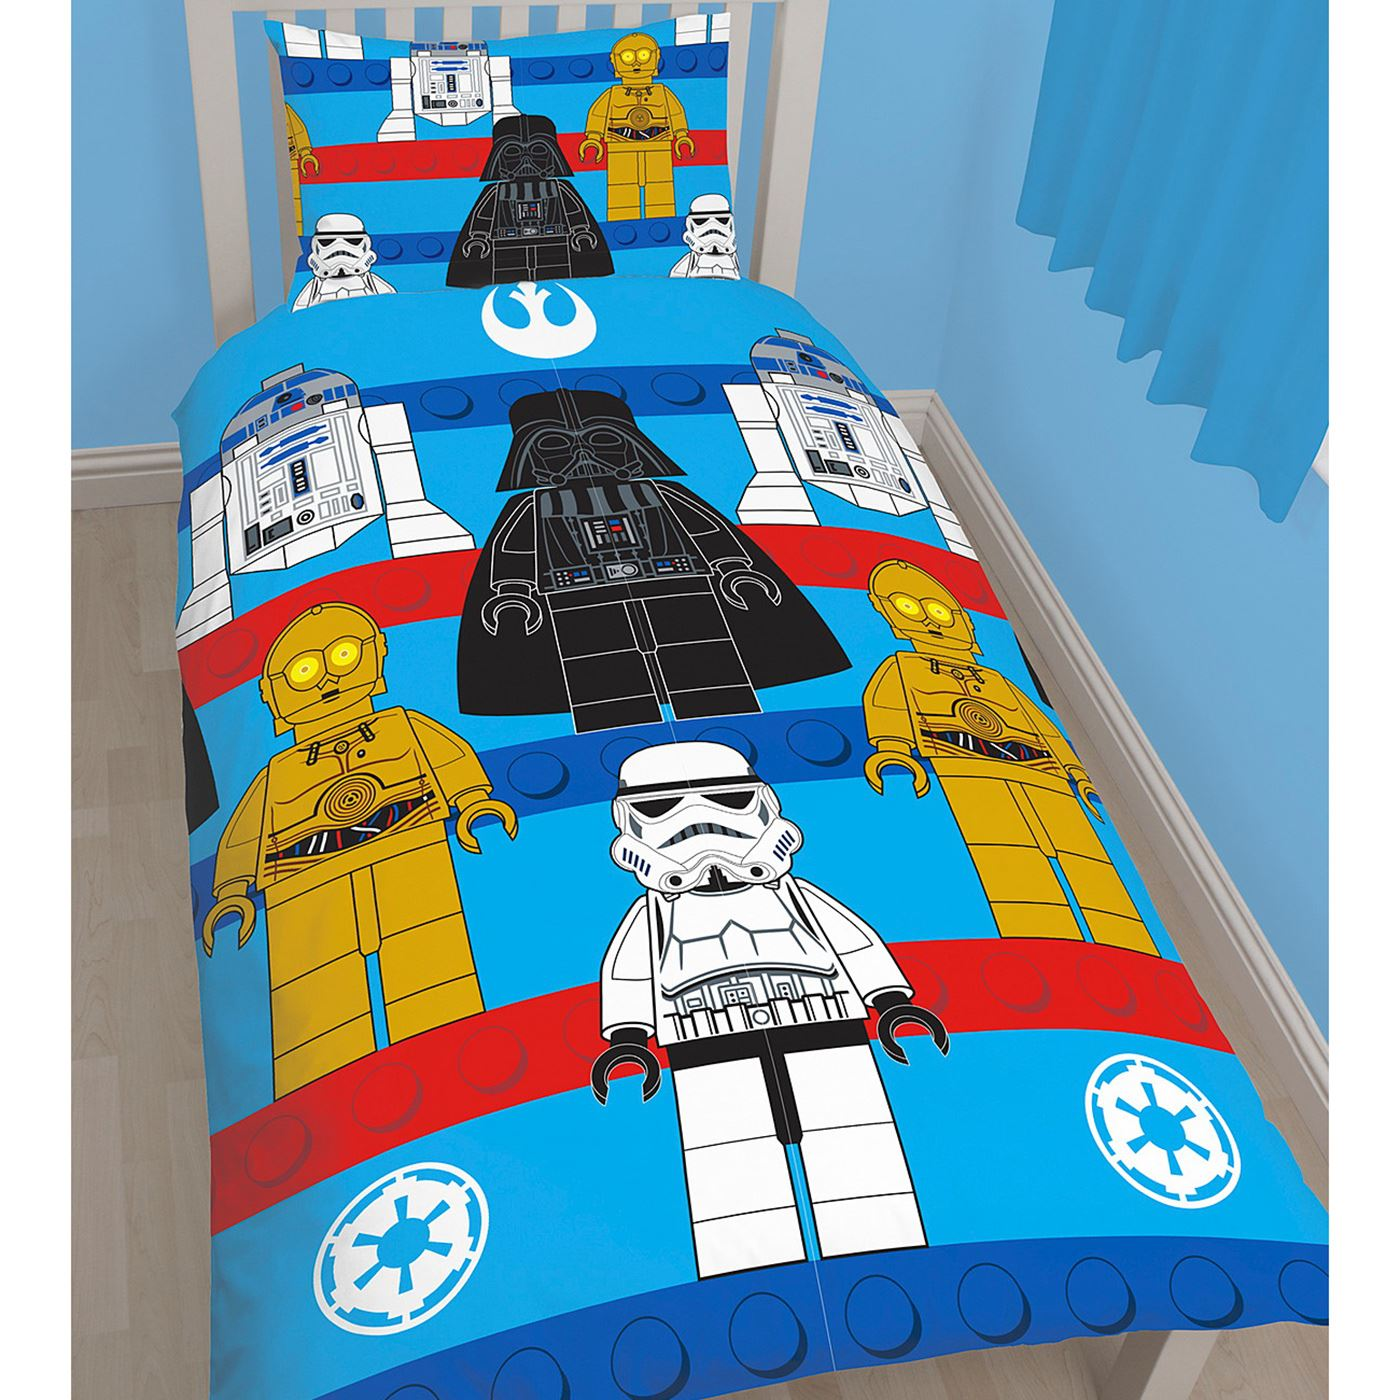 Garcon-Personnage-Simple-Rotary-Housse-Couette-Star-Wars-Avengers-Paw-Patrol